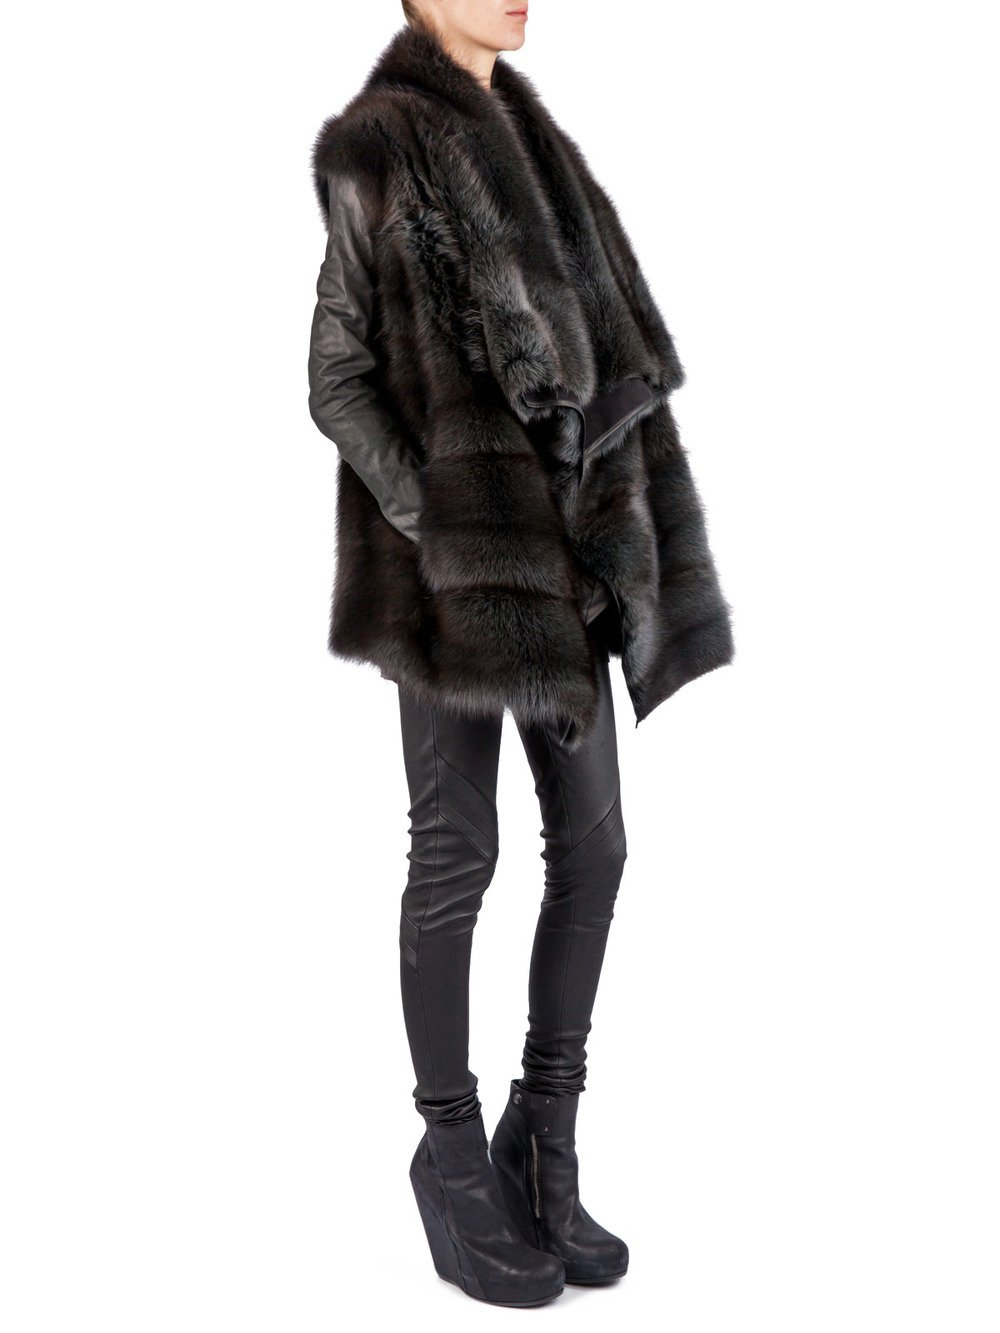 RICK OWENS HUN - LONG JACKET